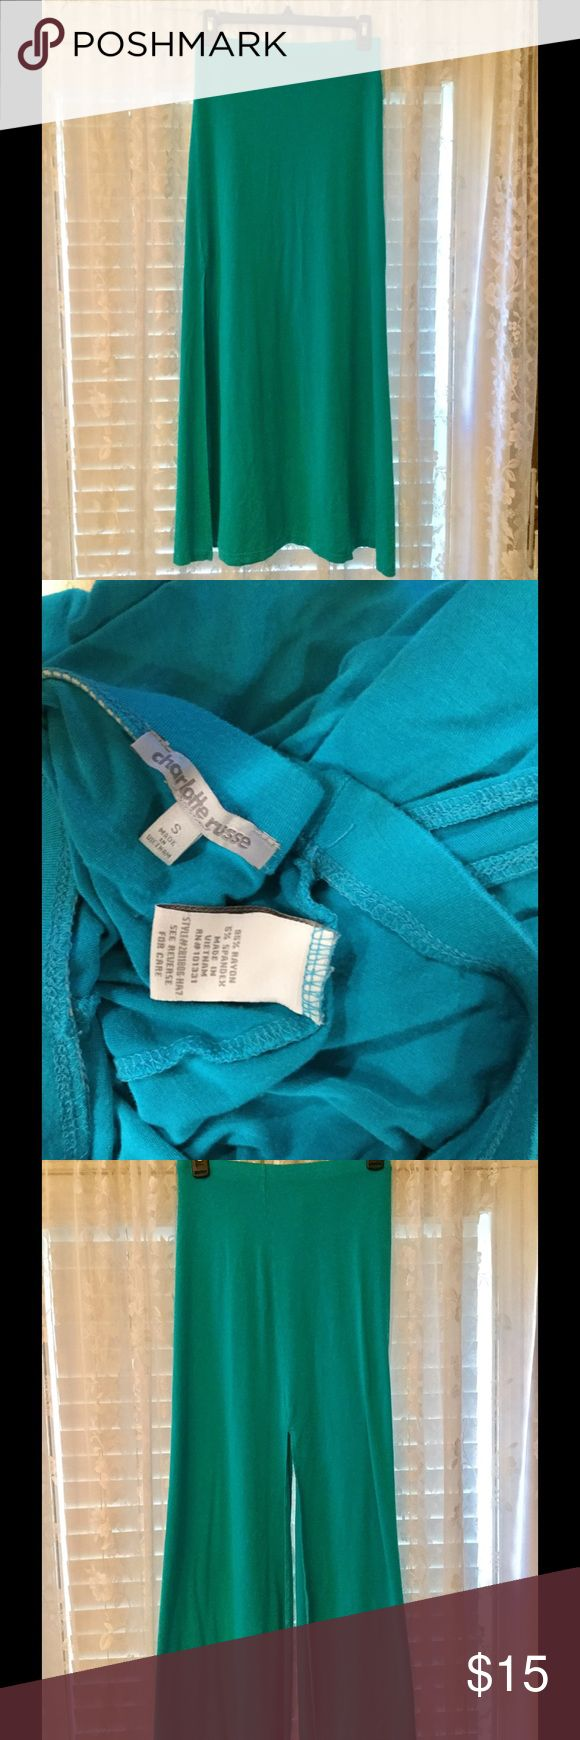 """Turquoise maxi skirt It's stretch with elastic waistband.  It is 37"""" long with side slits that are 21"""" long.  In excellent condition. Charlotte Russe Skirts Maxi"""